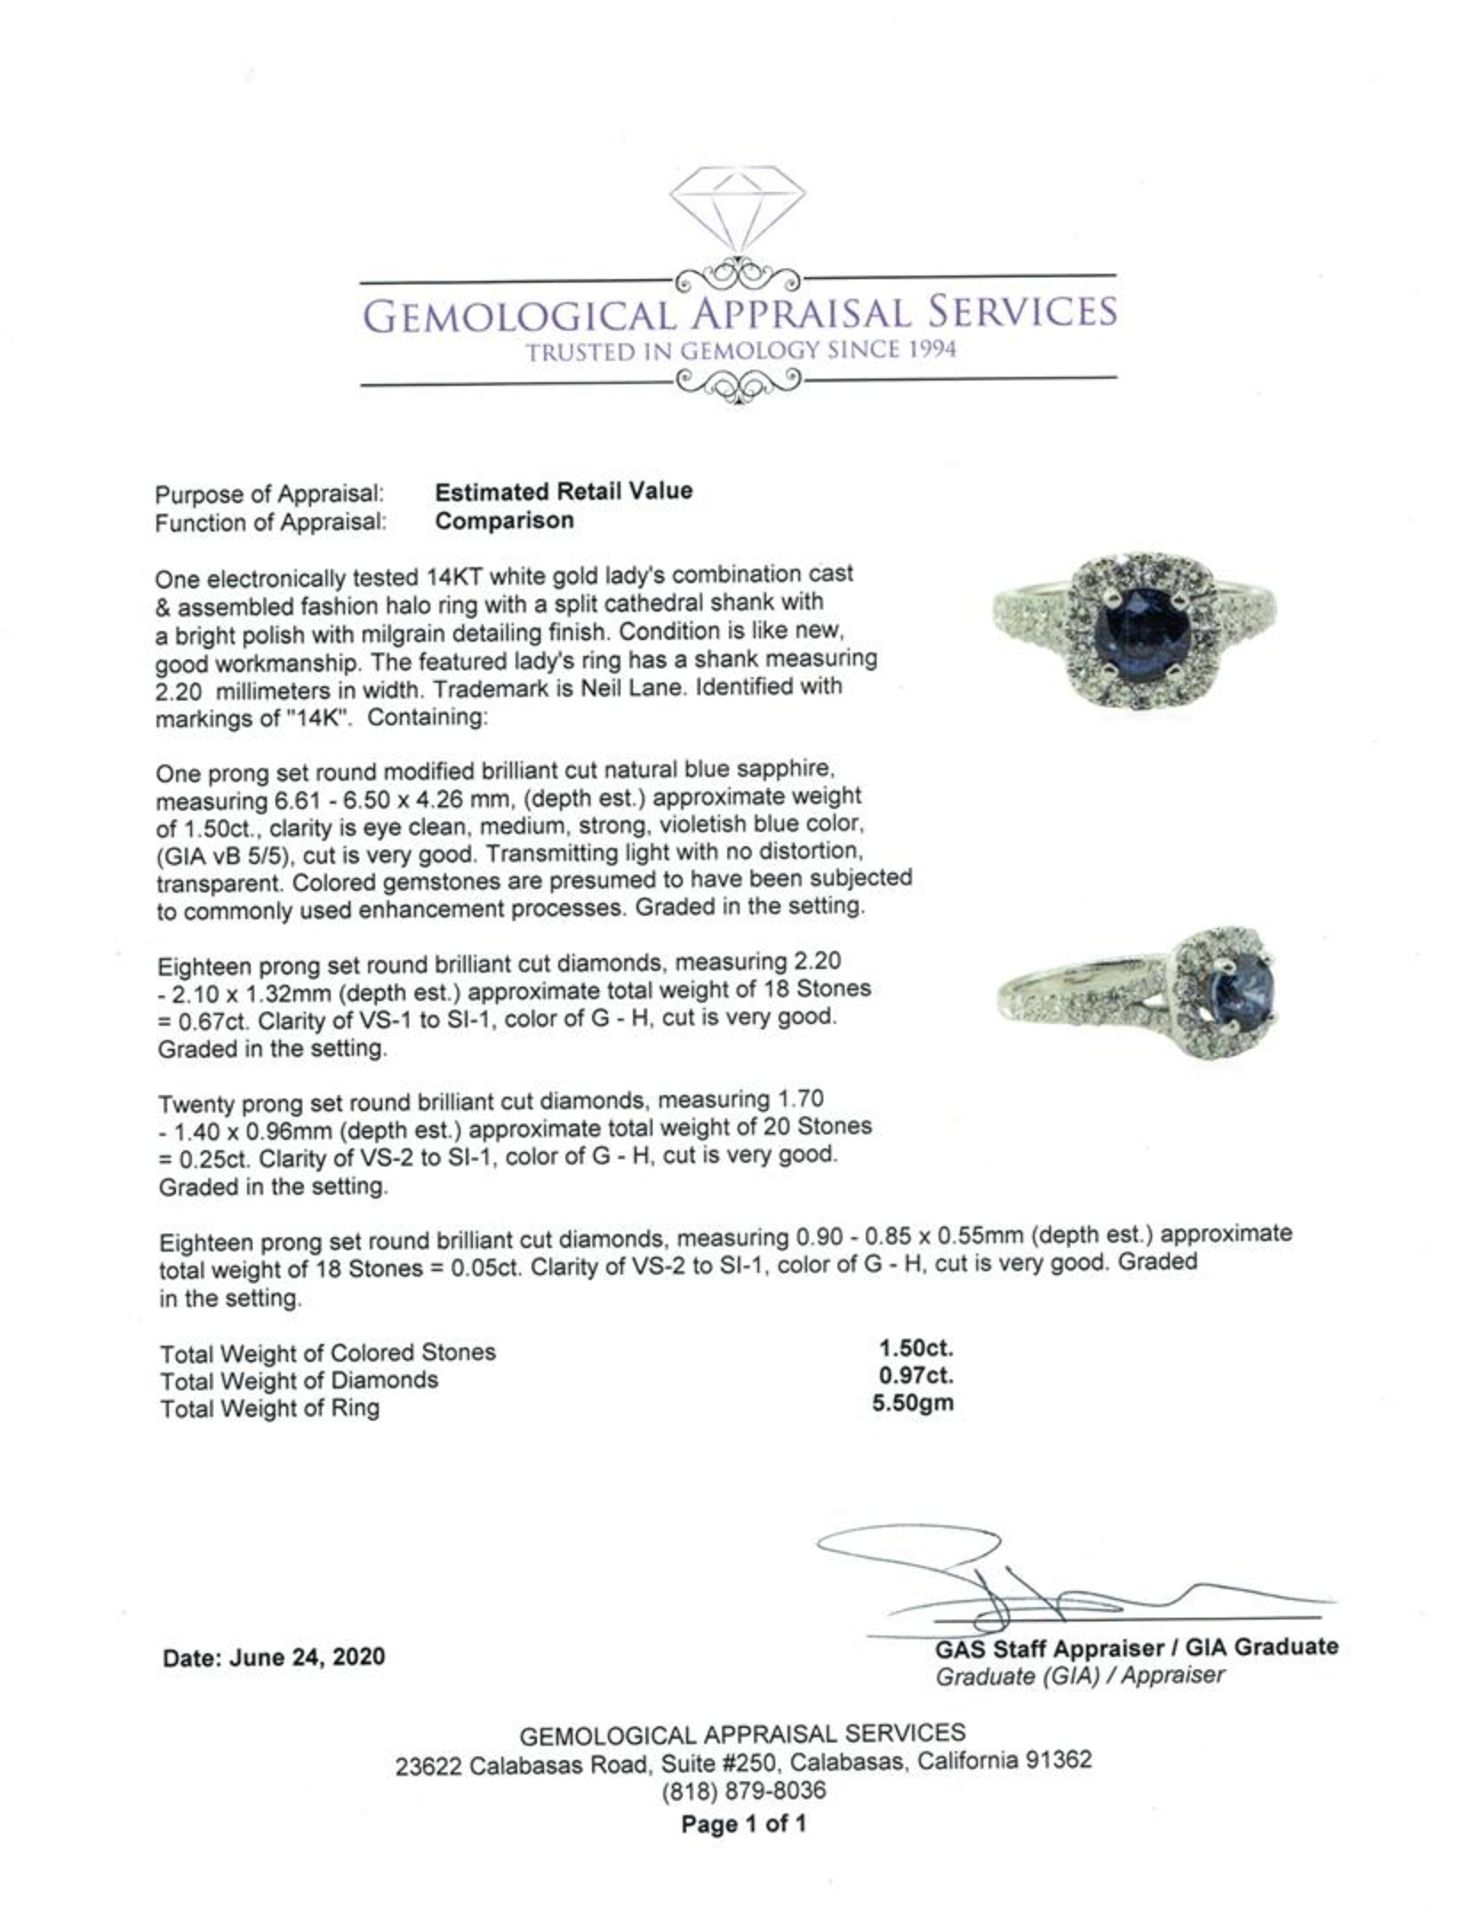 2.47 ctw Round Brilliant Blue Sapphire And Diamond Ring - 14KT White Gold - Image 5 of 5